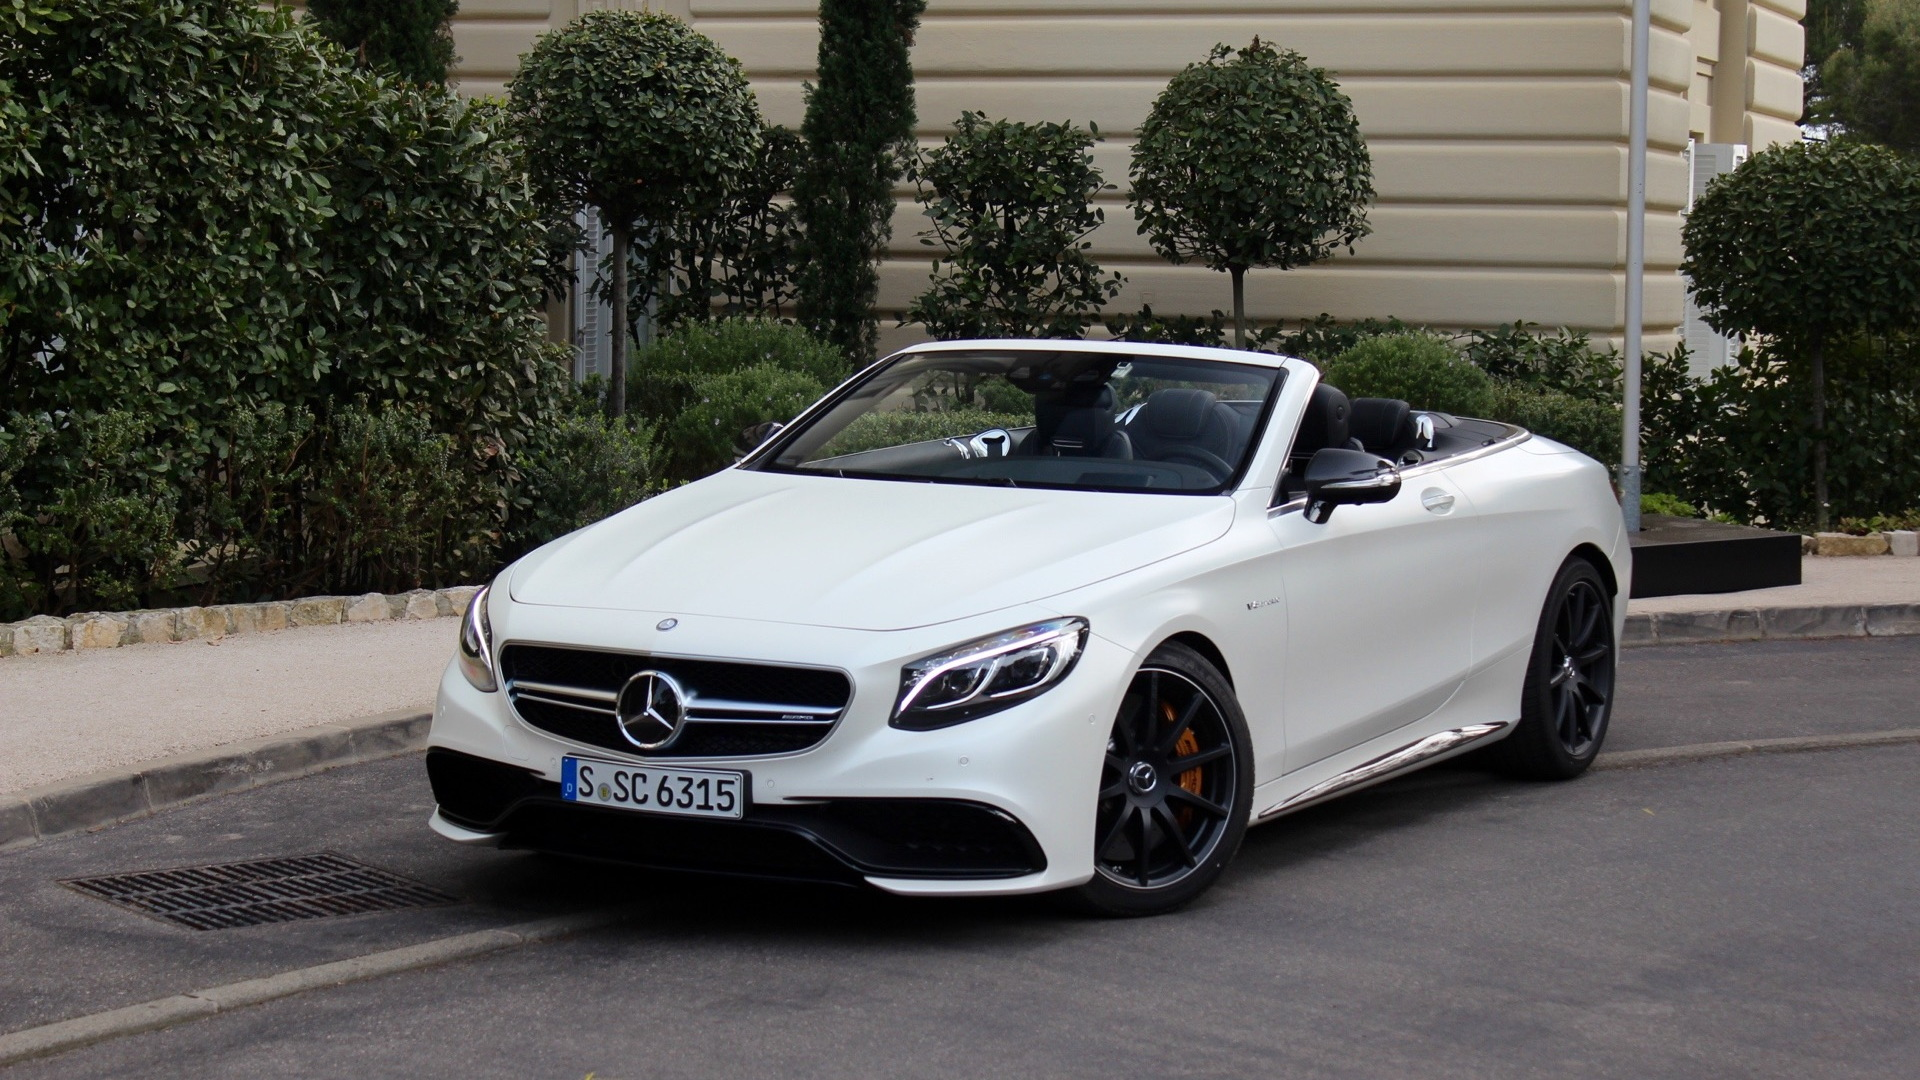 2017 Mercedes Benz S Cl Cabriolet First Drive April 2016